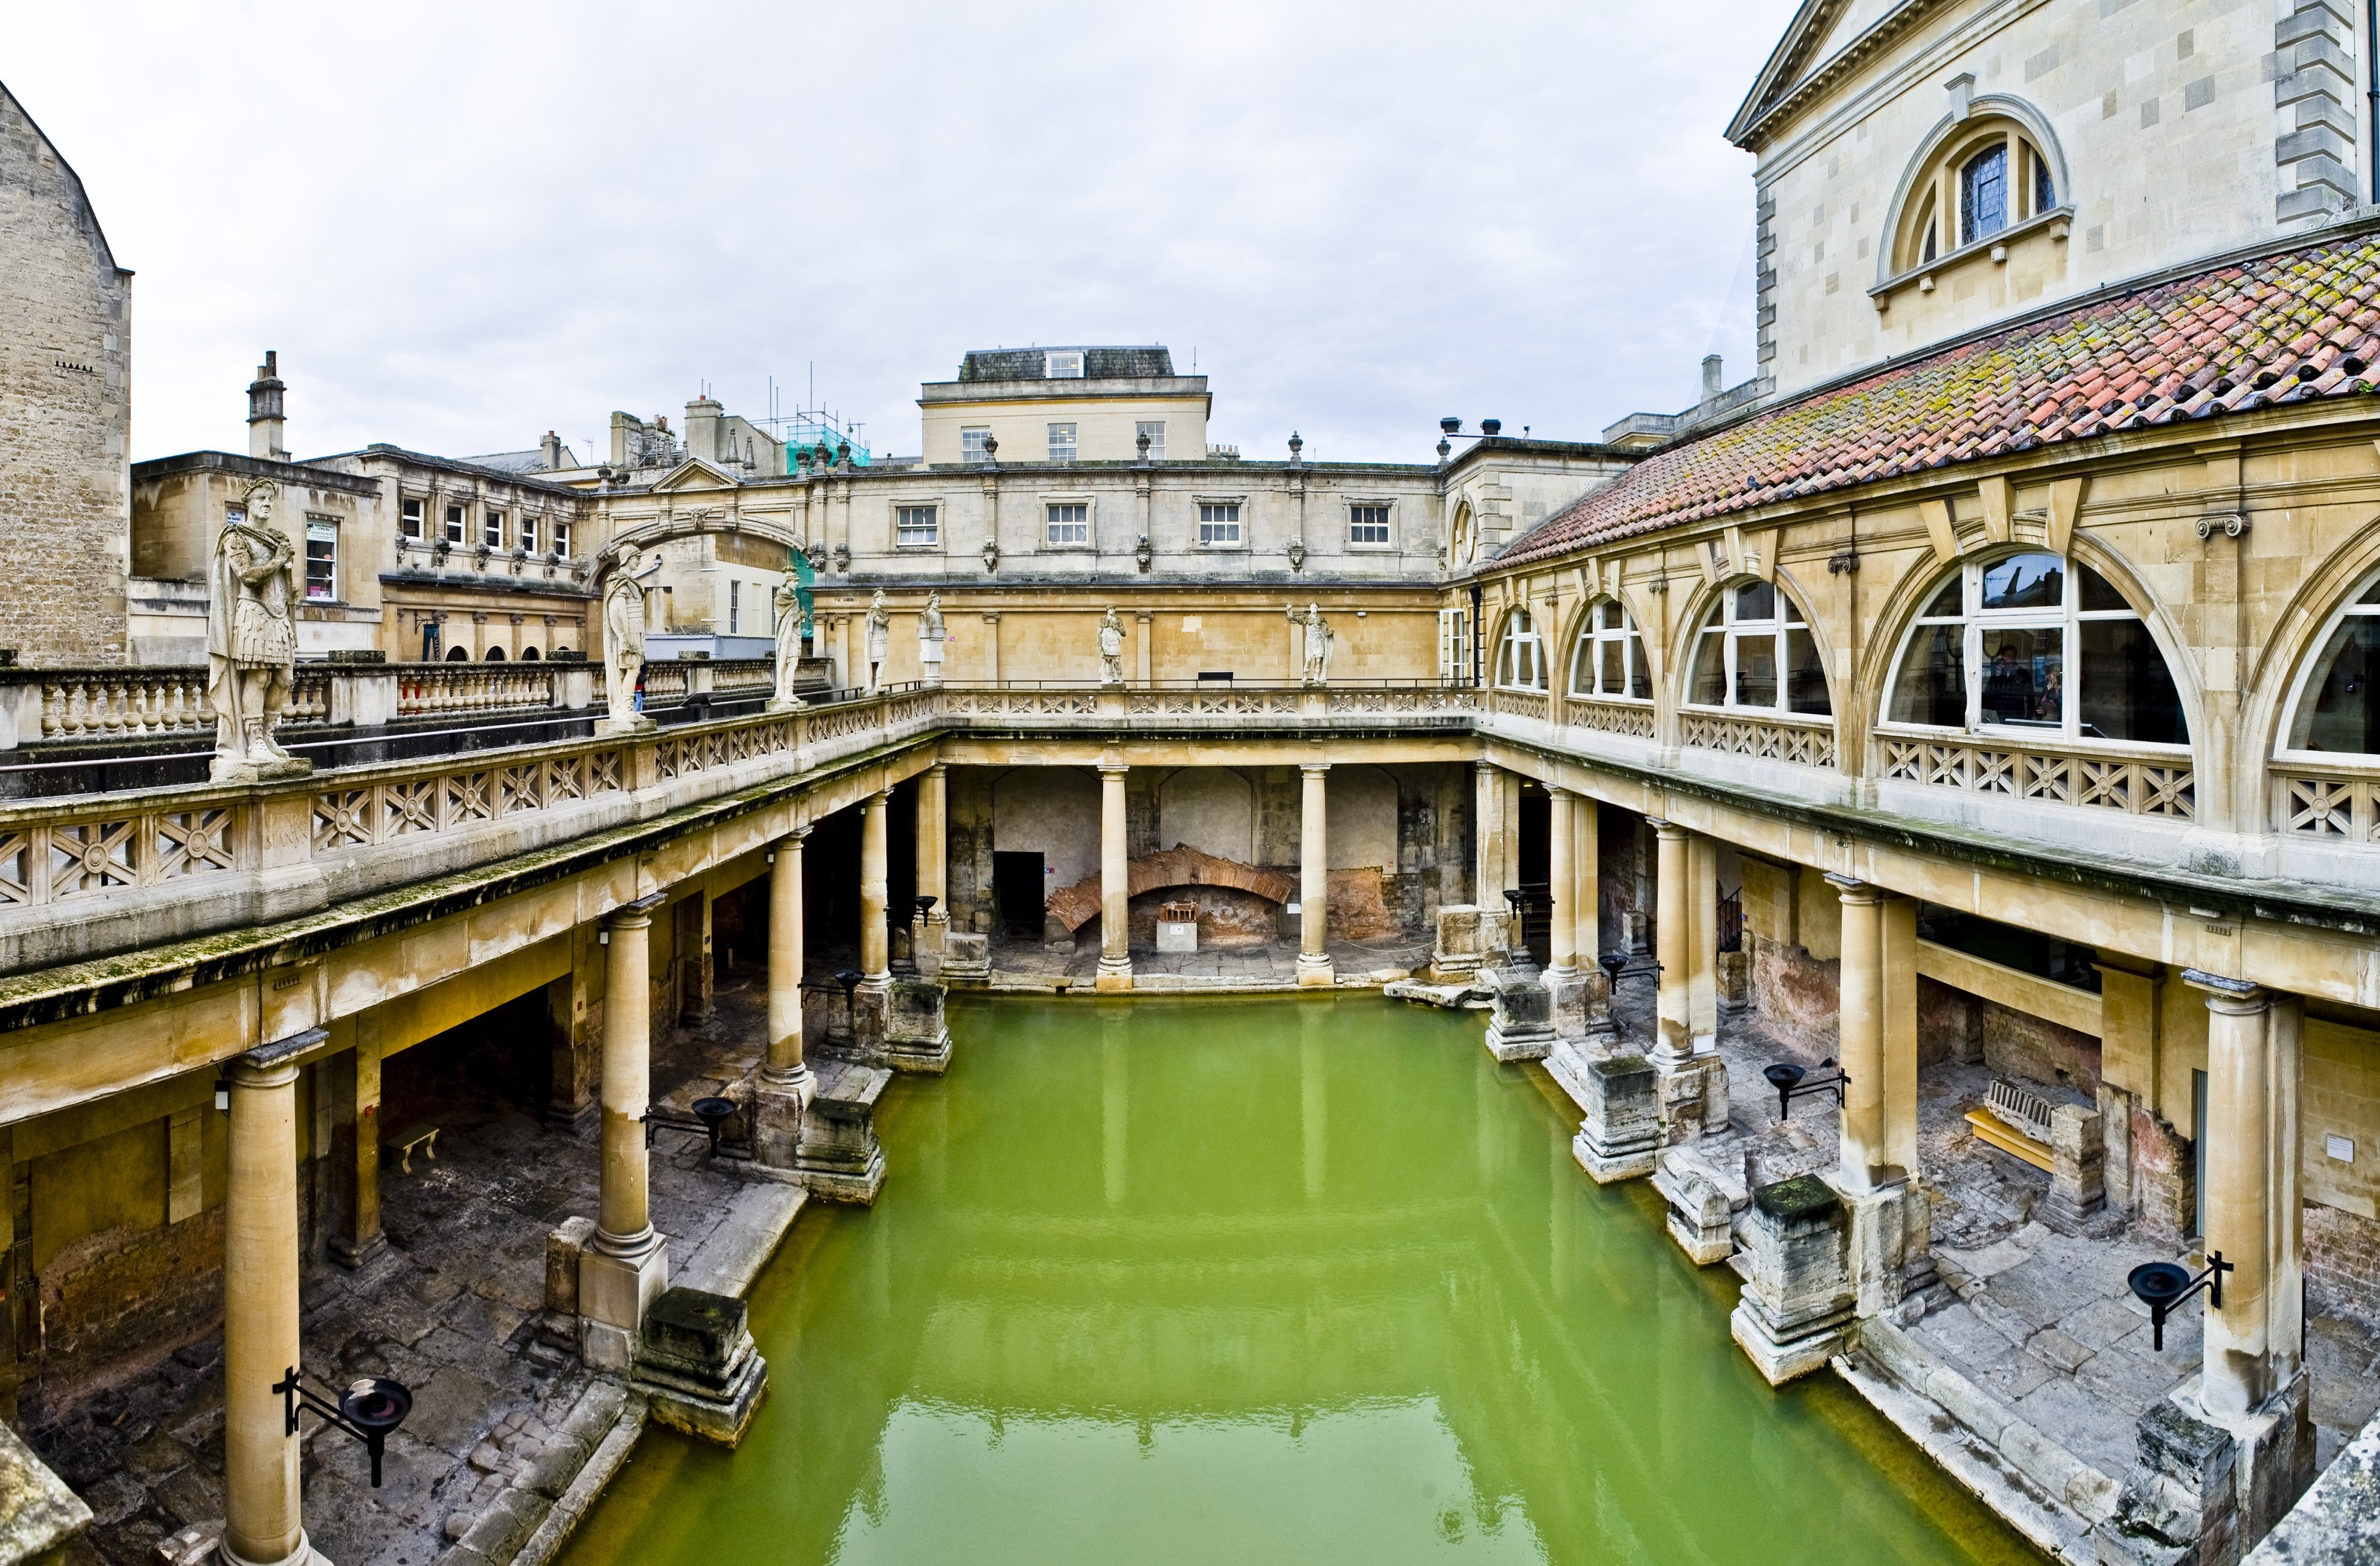 From London To Bath Day Trip By Train with Entry to Roman Baths